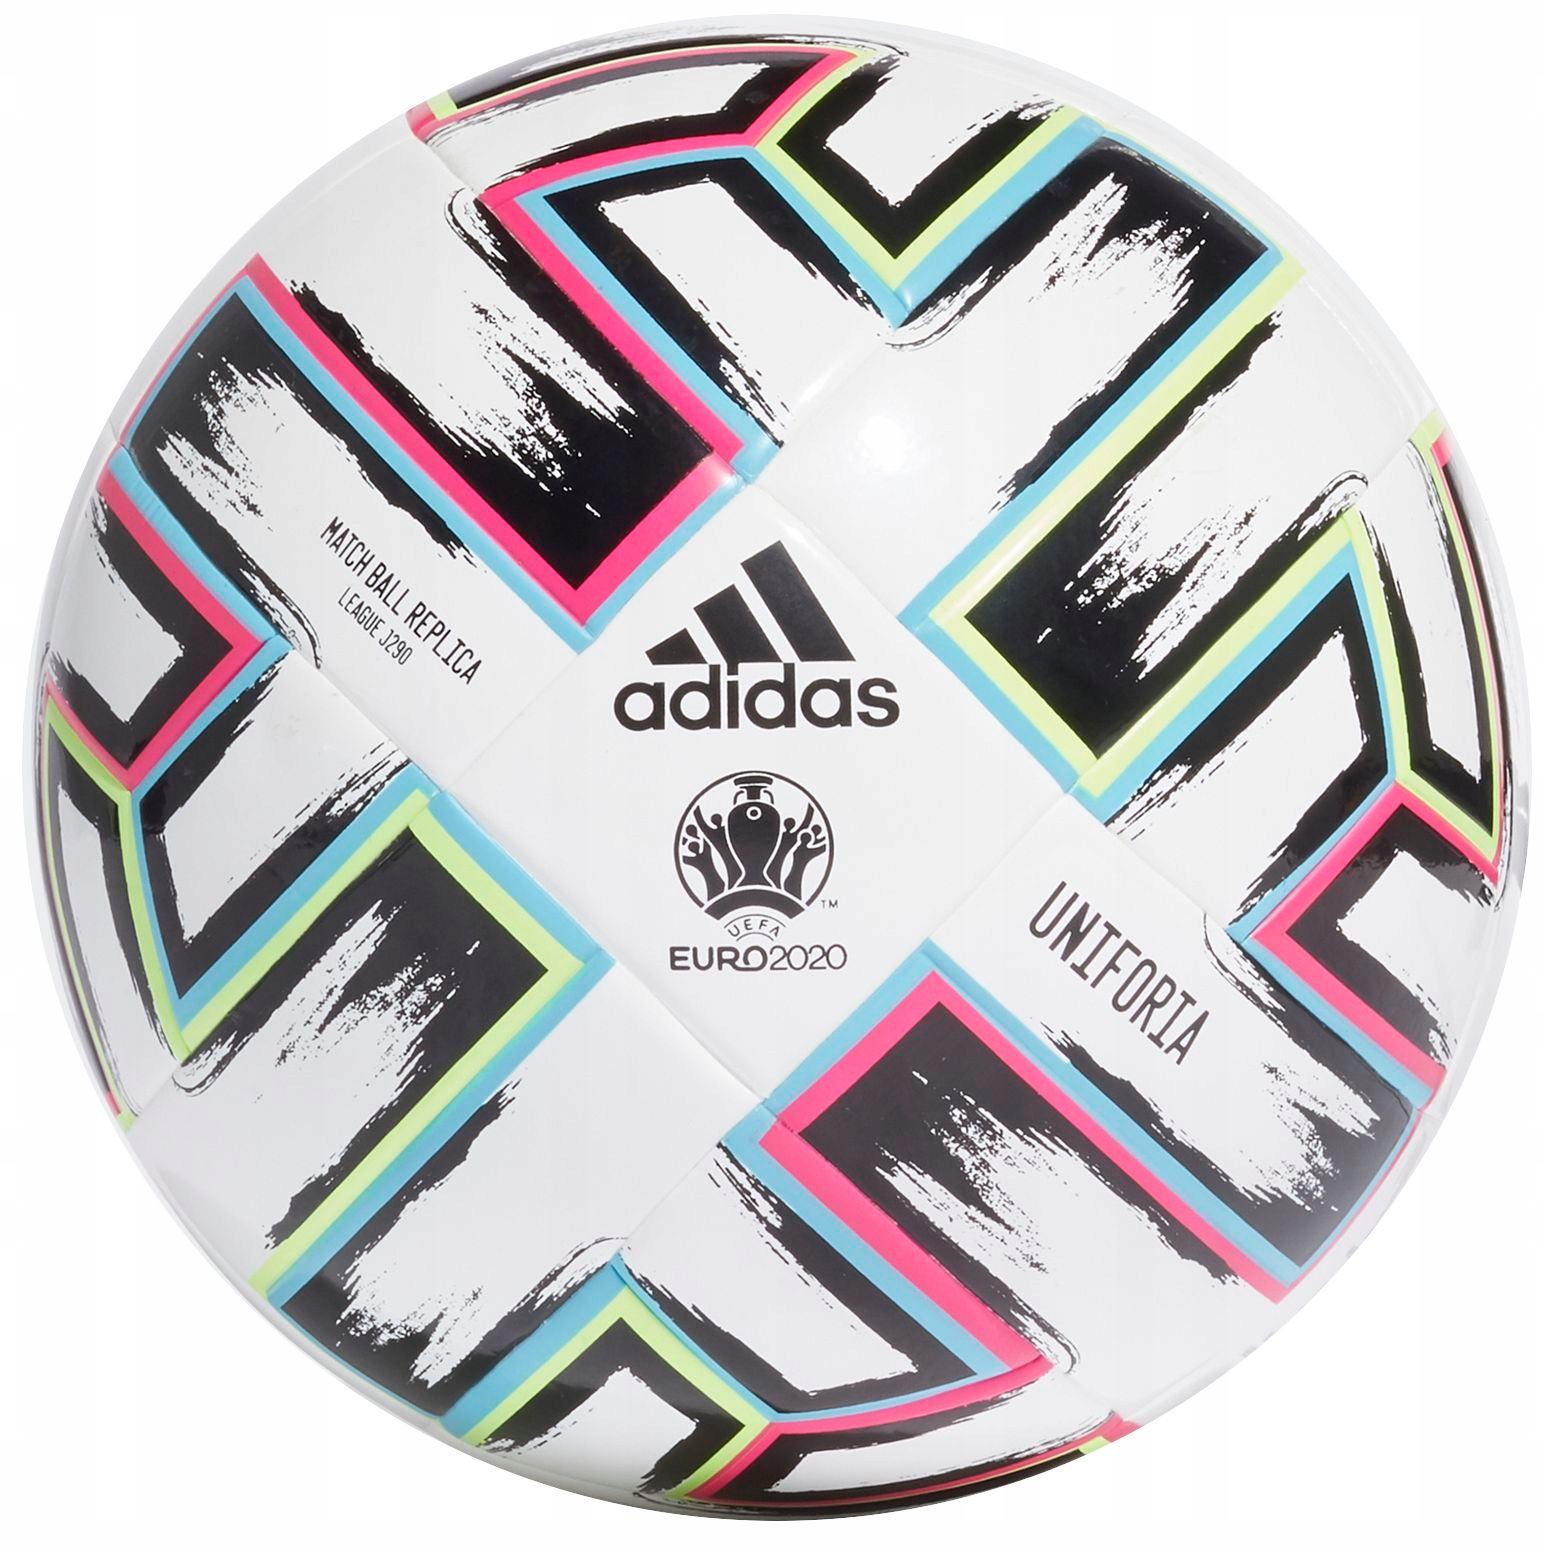 ШАР adidas UNIFORIA EURO 2020 light 290 г r4